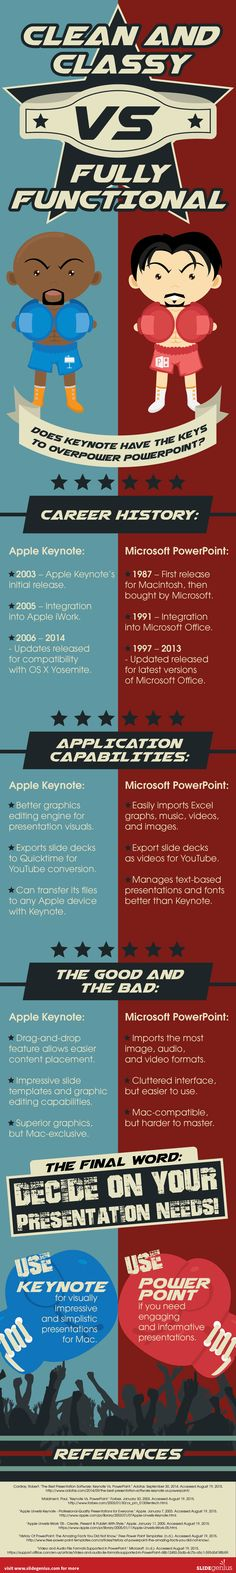 Does Keynote Have the Keys to Overpower PowerPoint? #infographic #Education #Marketing #Keynote #PowerPoint